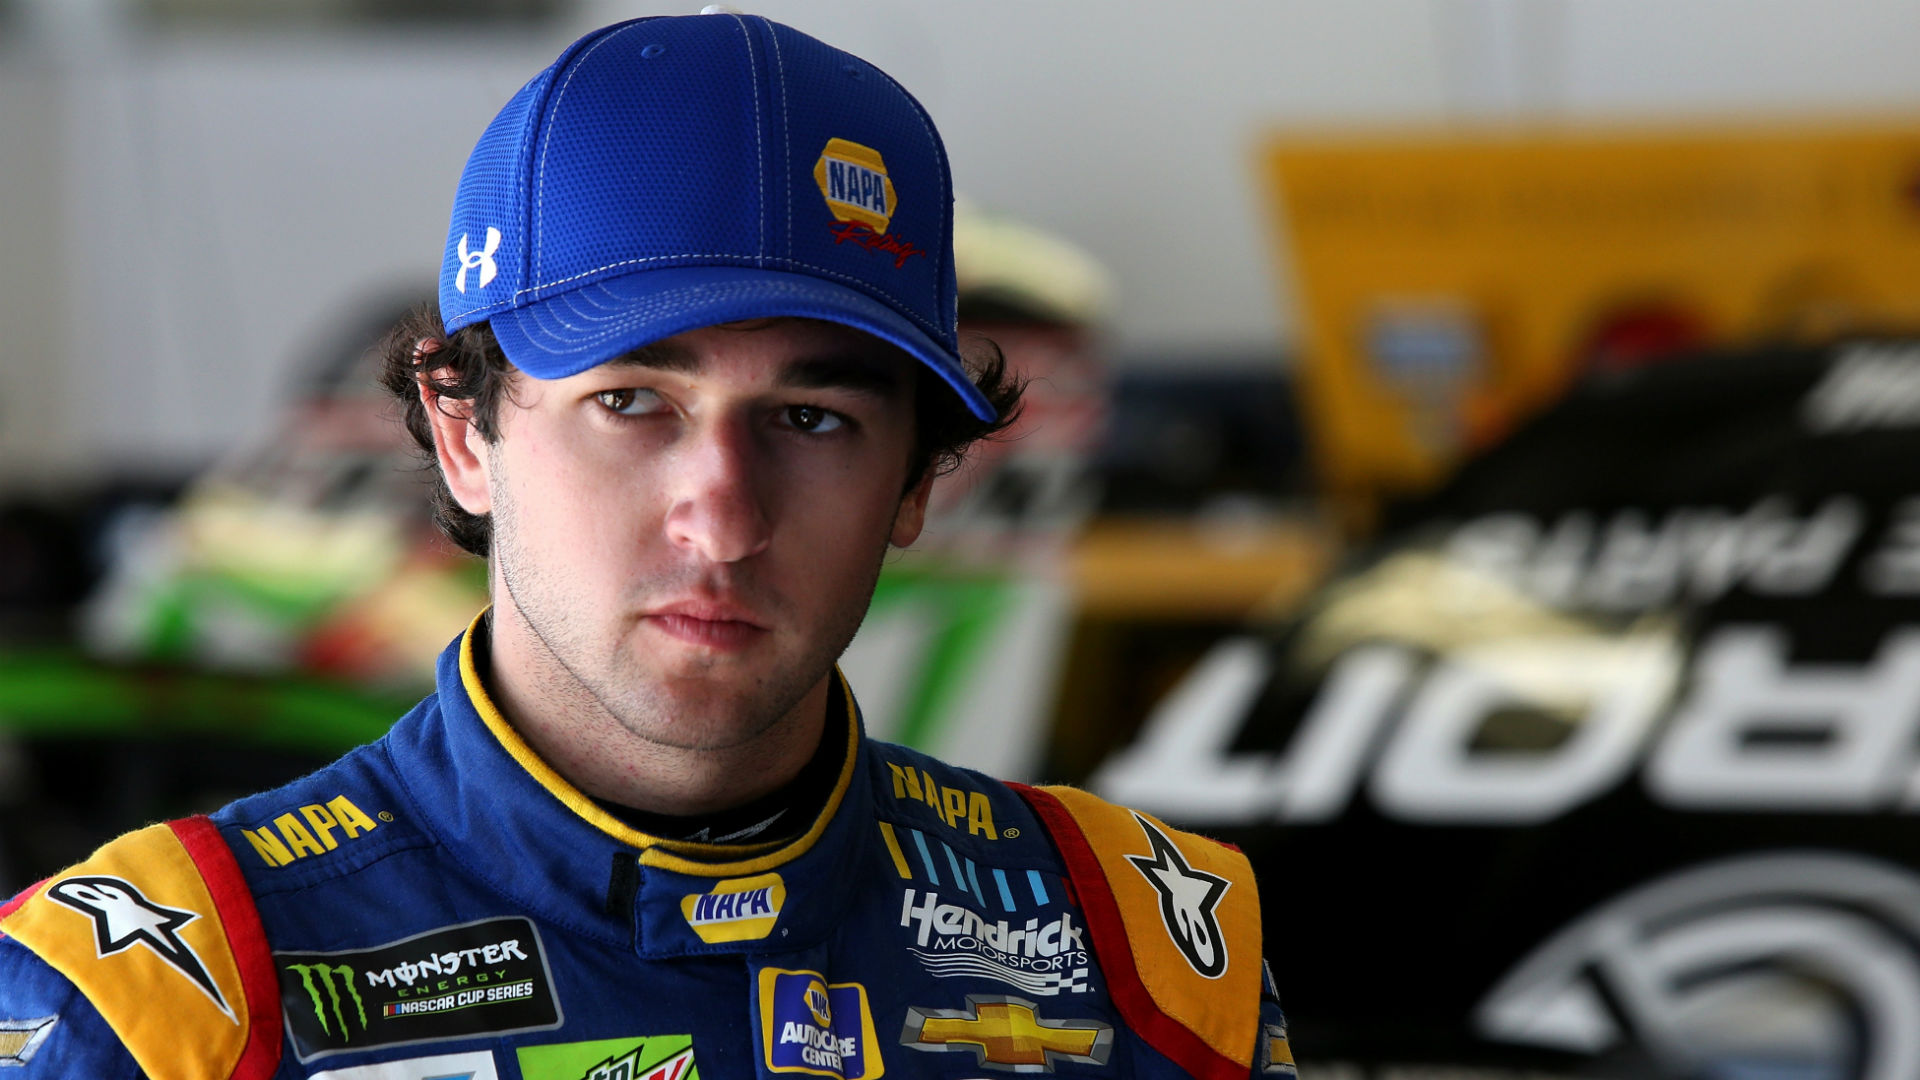 Chase Elliott says Kyle Busch was 'deserving' of middle finger at Toyota 500, has 'no regrets'